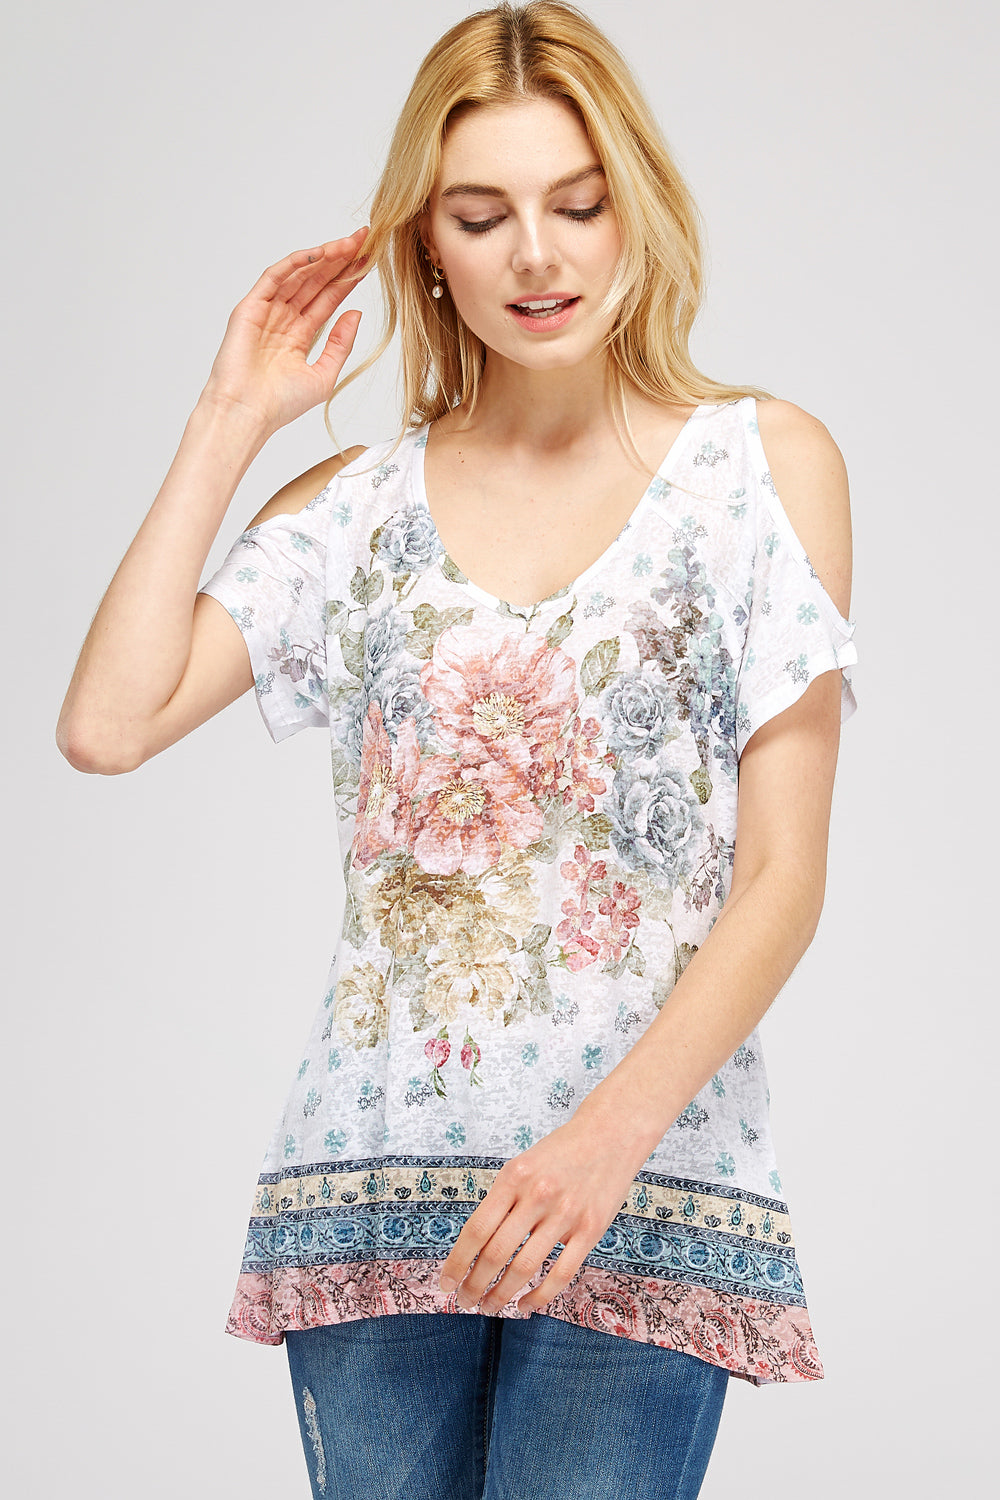 Wholesale Clothing, Online Wholesale Clothing, Women Clothing, Bohemian, Free People, tiedye, specialty wash, wholesale seller, wholesale women clothing shop, gypsy look, USA made, URBAN X FULL-SIZE-FULL SIZE RUN-UTSP3306, fashiontrend2019